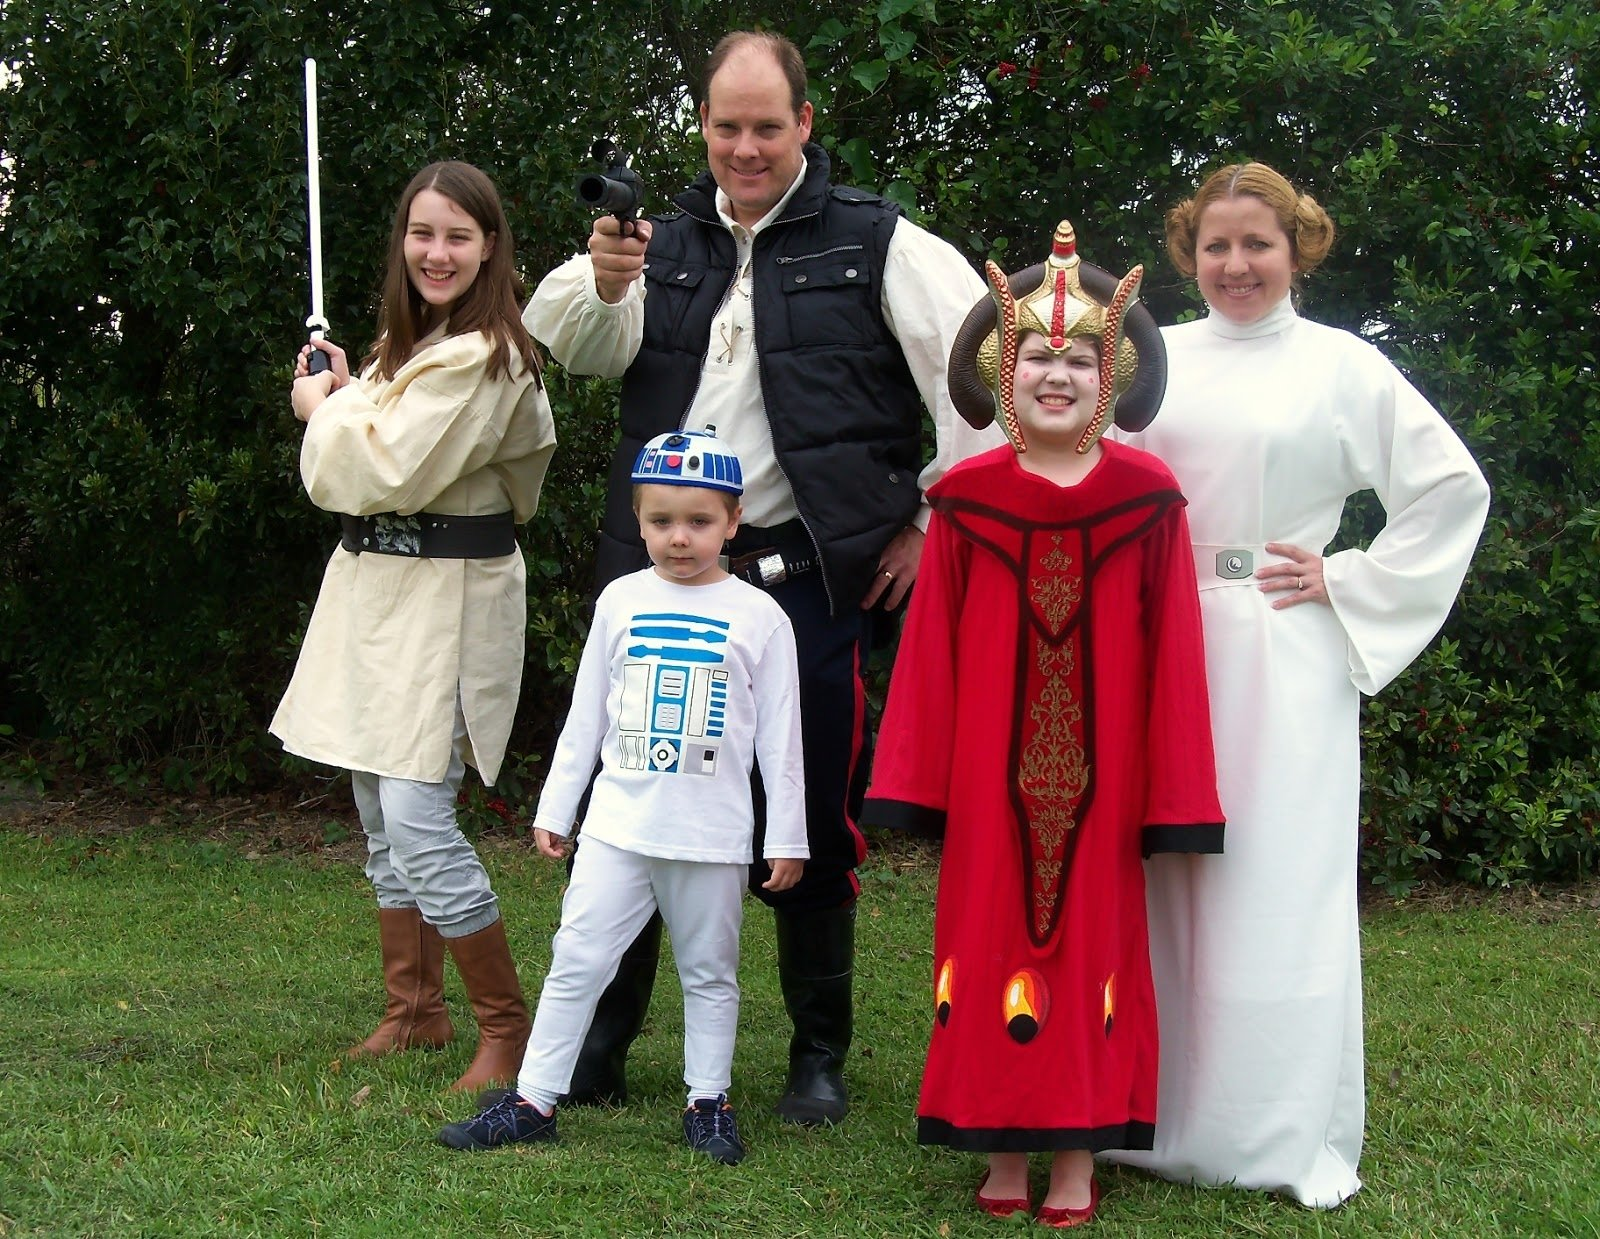 10 Perfect Family Costume Ideas For 6 6 family theme halloween costumes my awesomely talented friend 2020